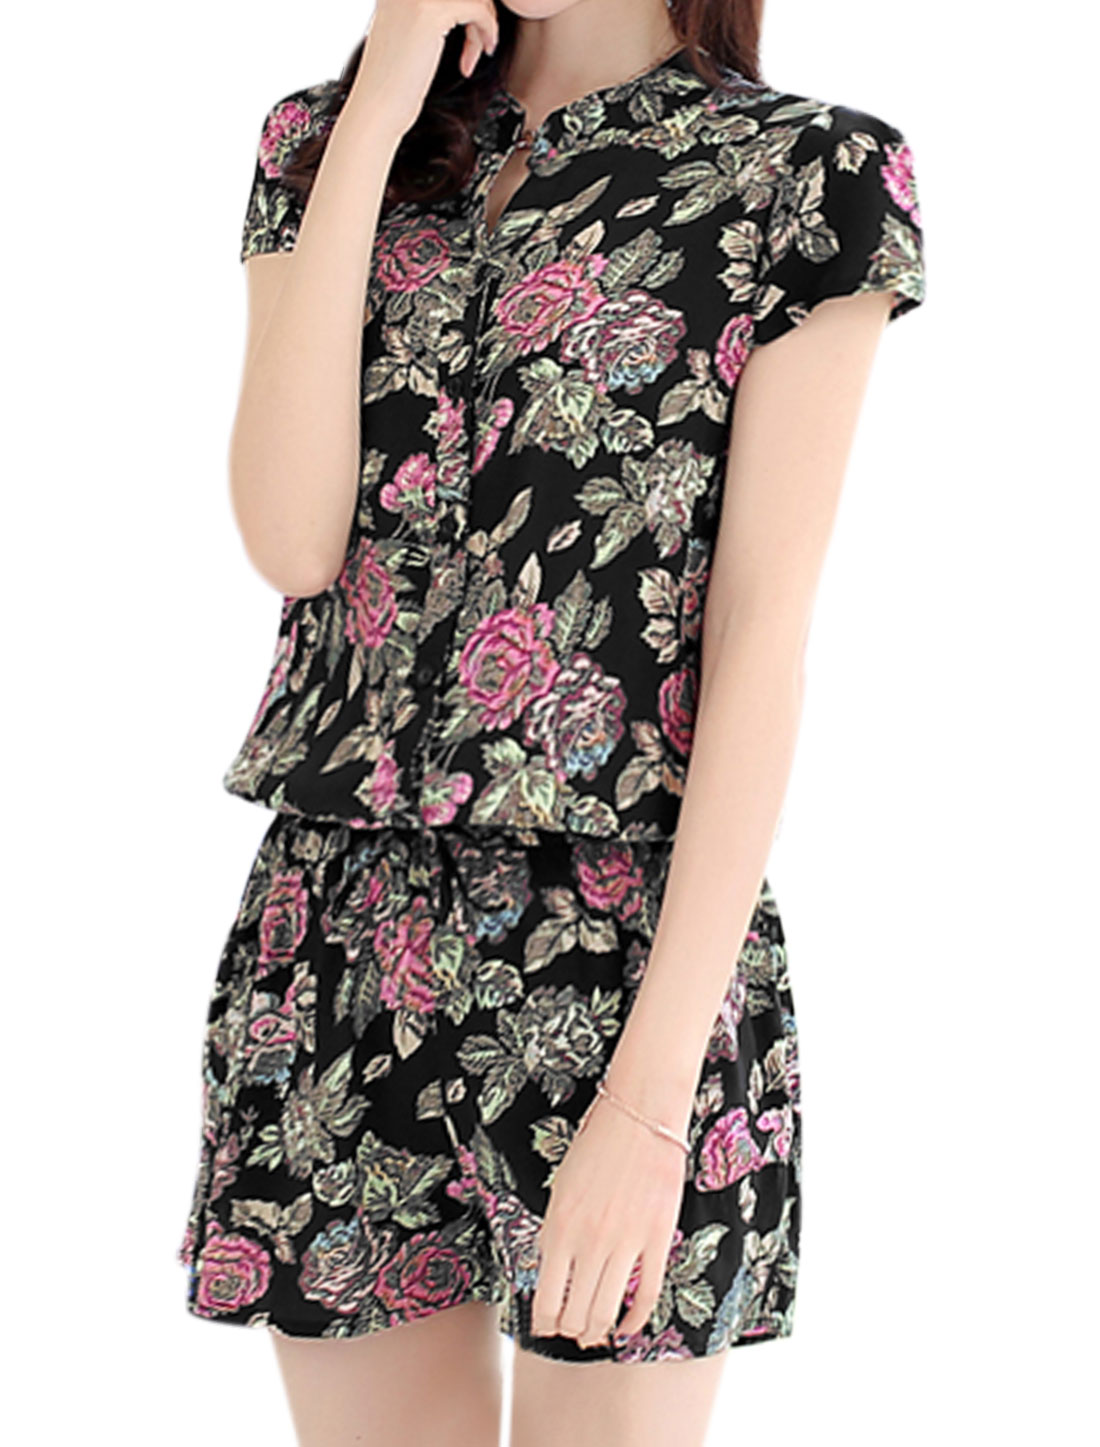 Women Floral Prints Cap Sleeves Elastic Waist Romper Black S